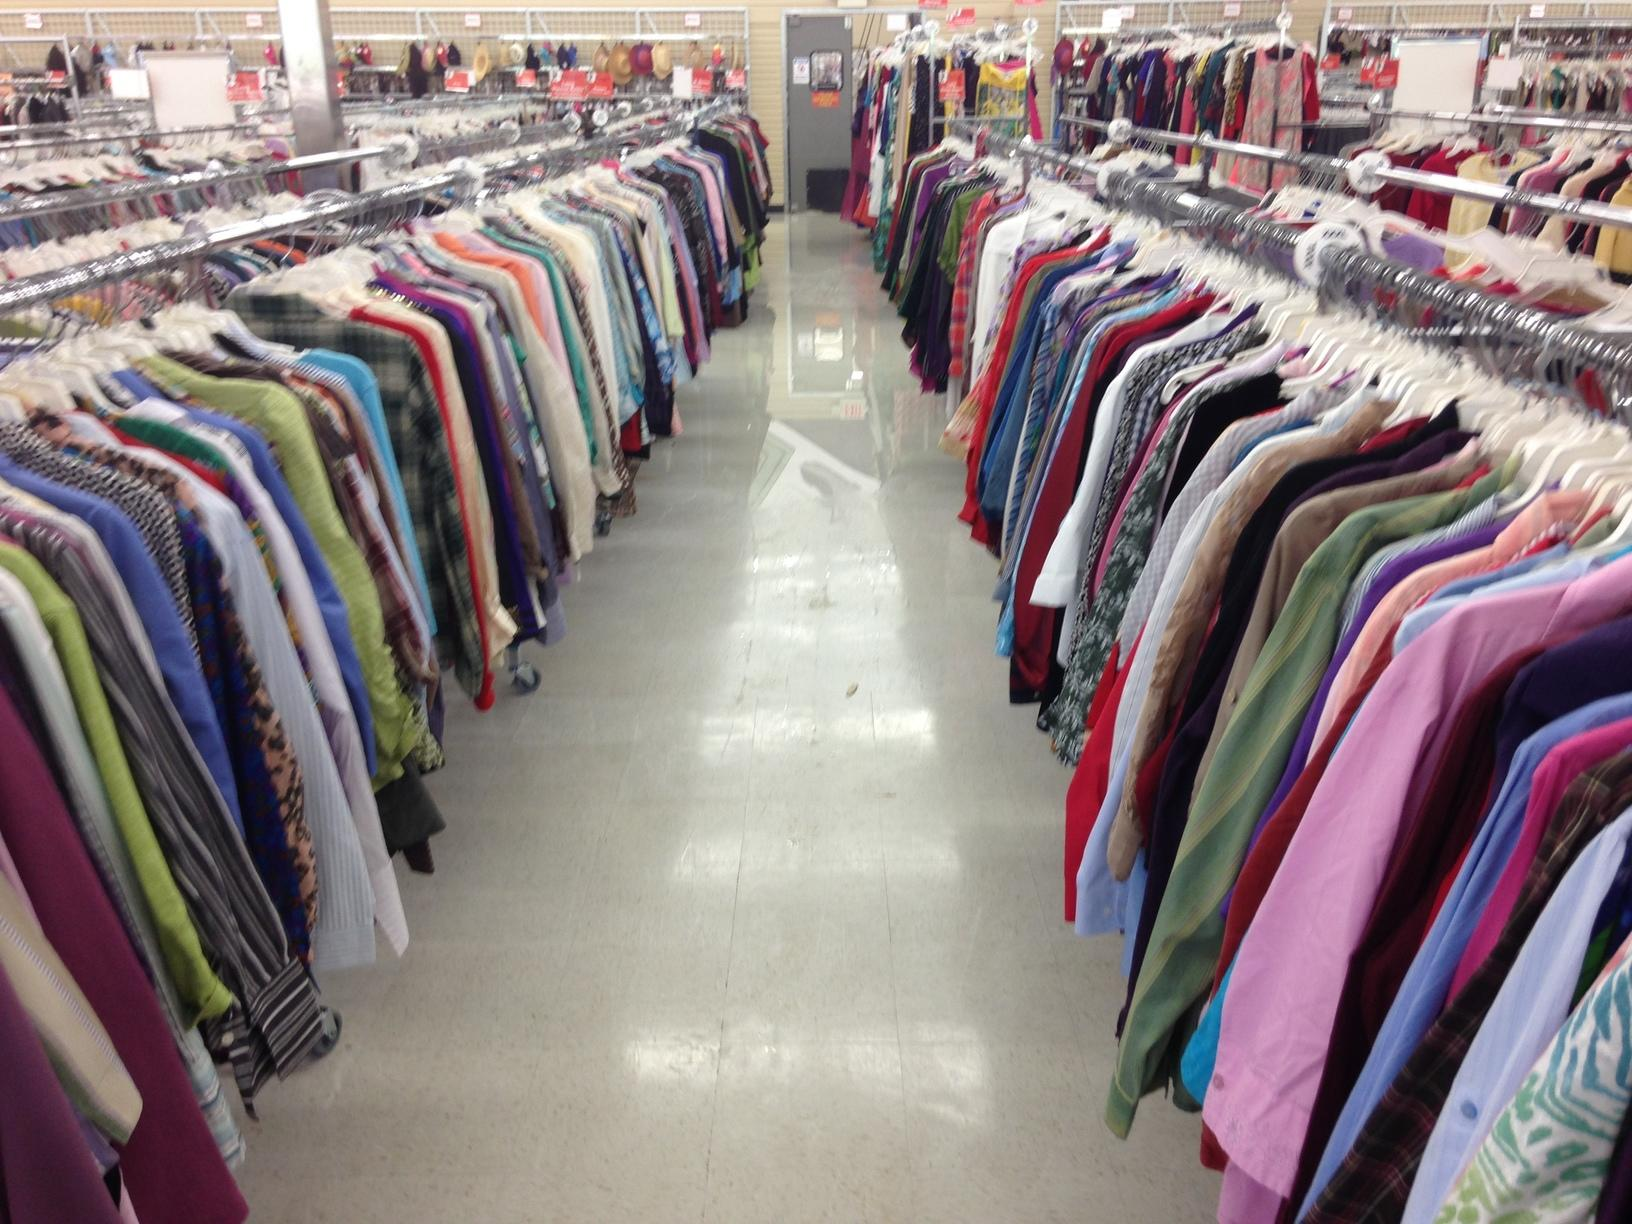 Commercial water damage repair in Eastlake, OH thrift store - After Photo